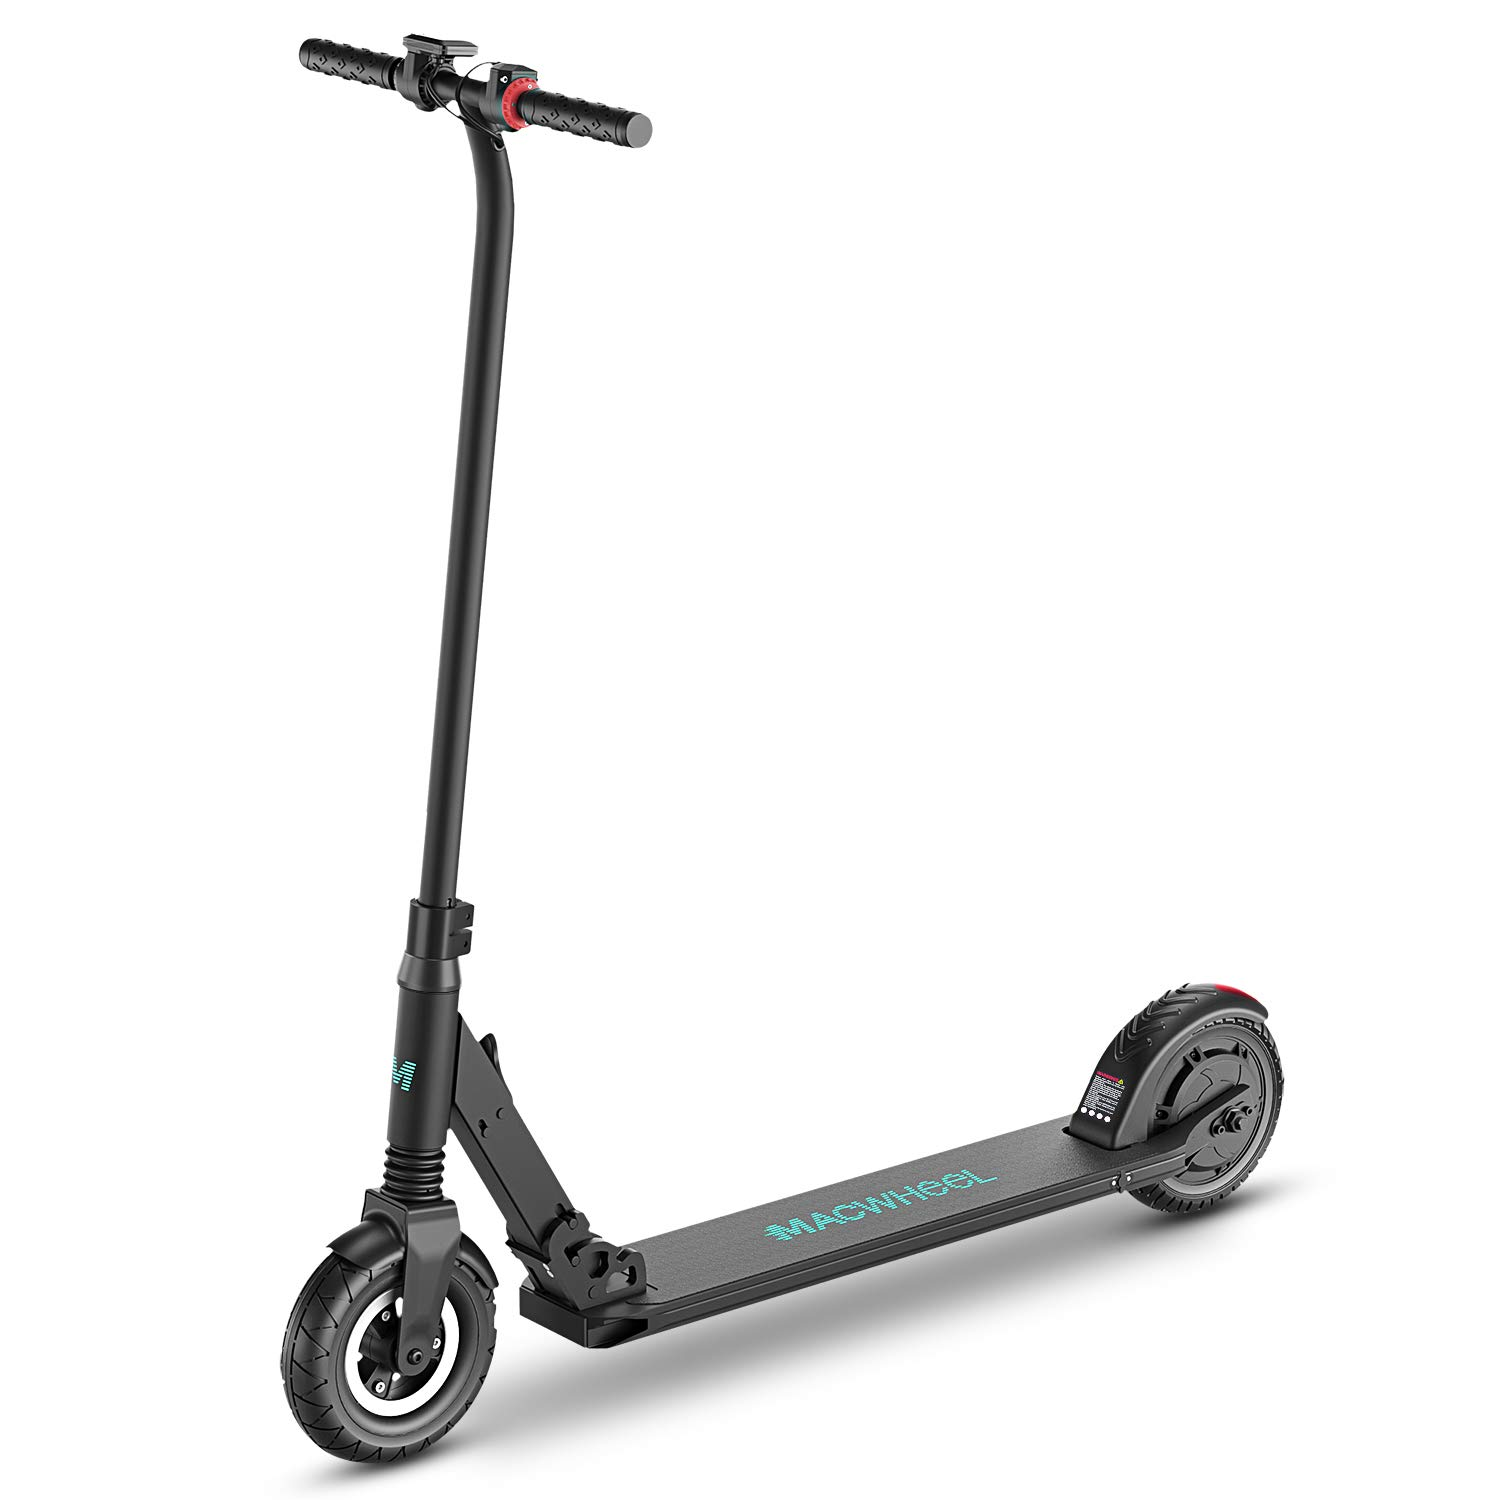 Macwheel Foldable Lightweight Electric Scooter, 8'' Airless Foam Filled Tires, Powerful 300W Motor, Up to 15 MPH, Lightweight Folding Adult Electric Scooter for Commuting(MX2) by Macwheel